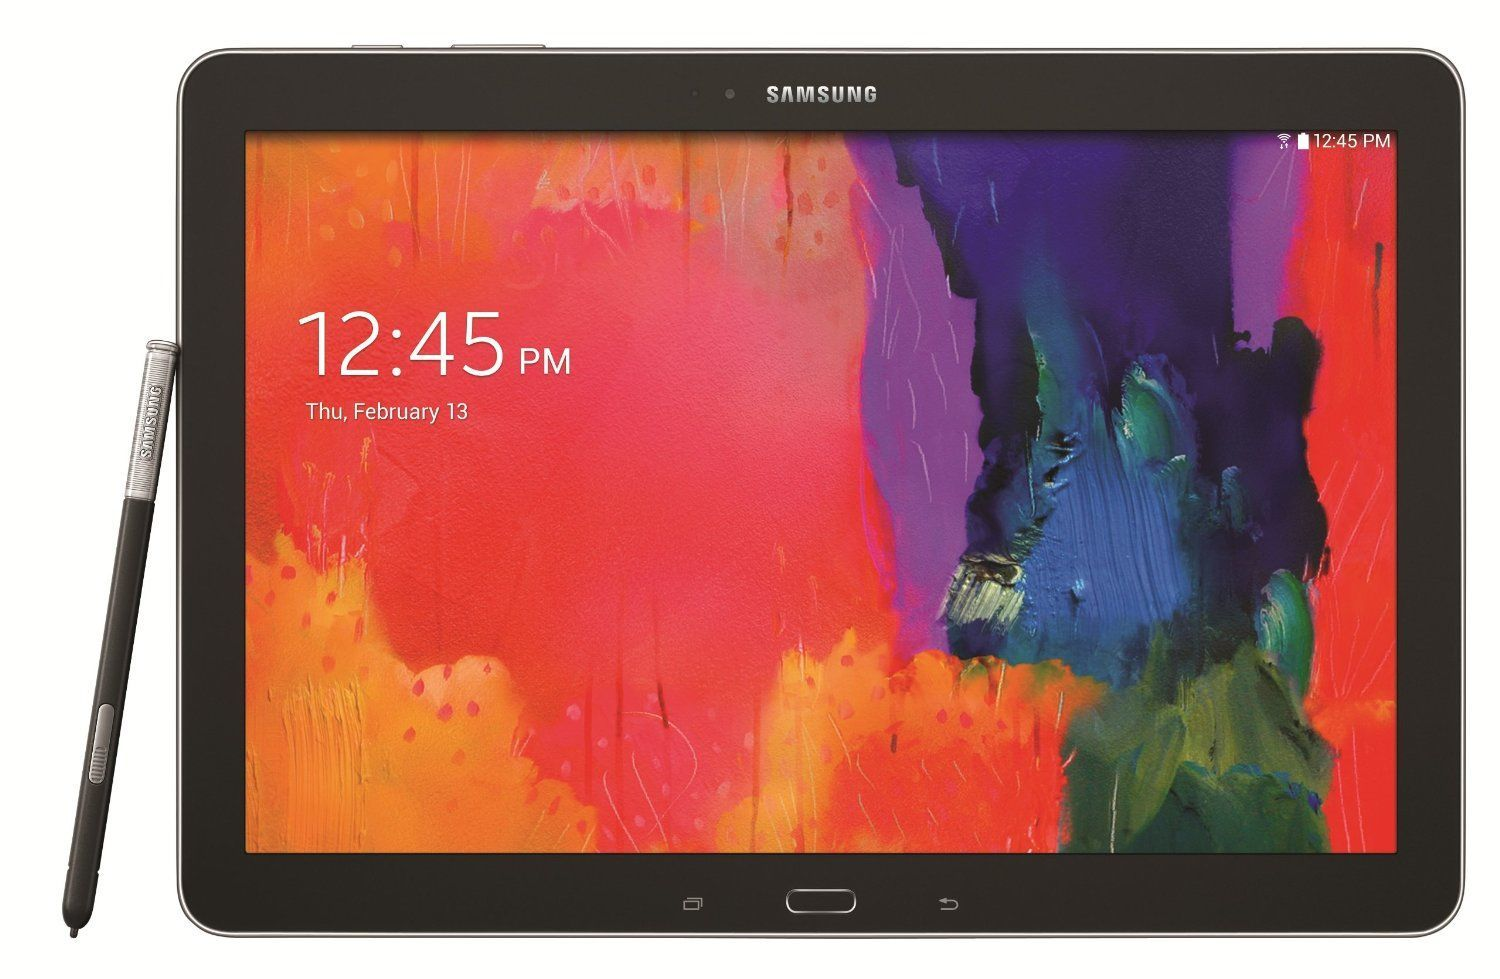 Samsung Galaxy Note Pro 12.2 Inch Android Tablet